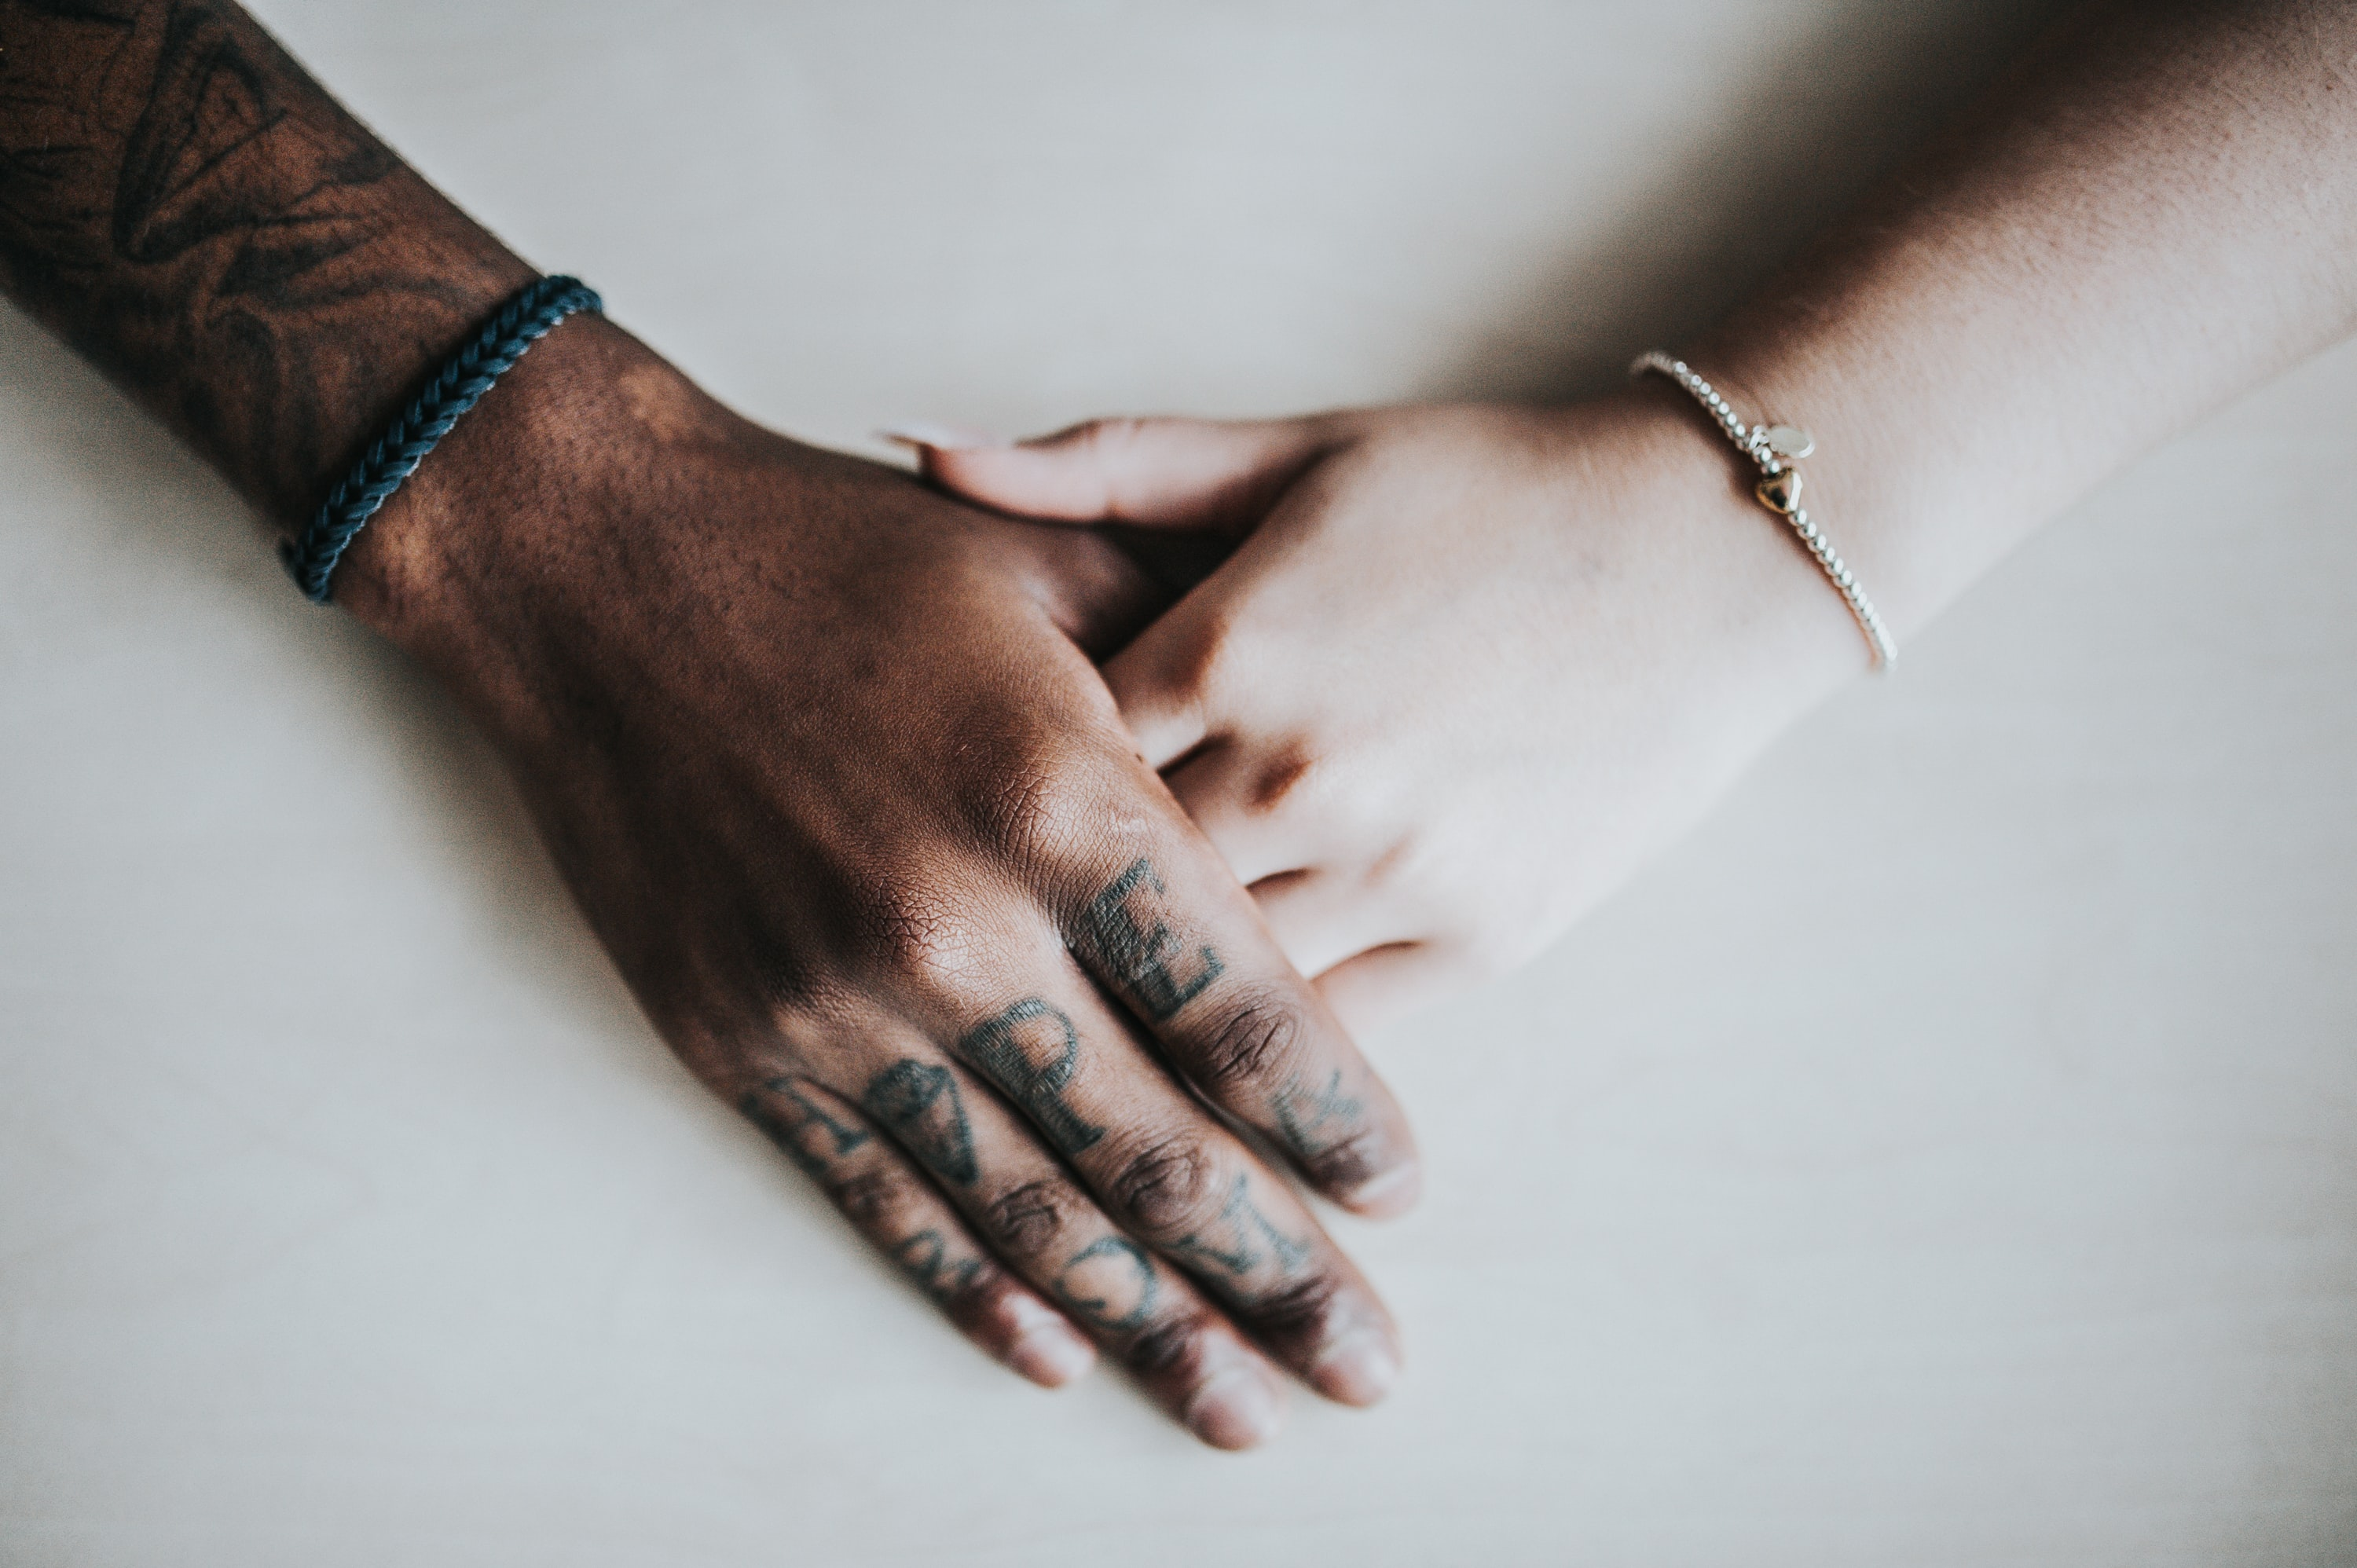 Couple holding hands on a white table